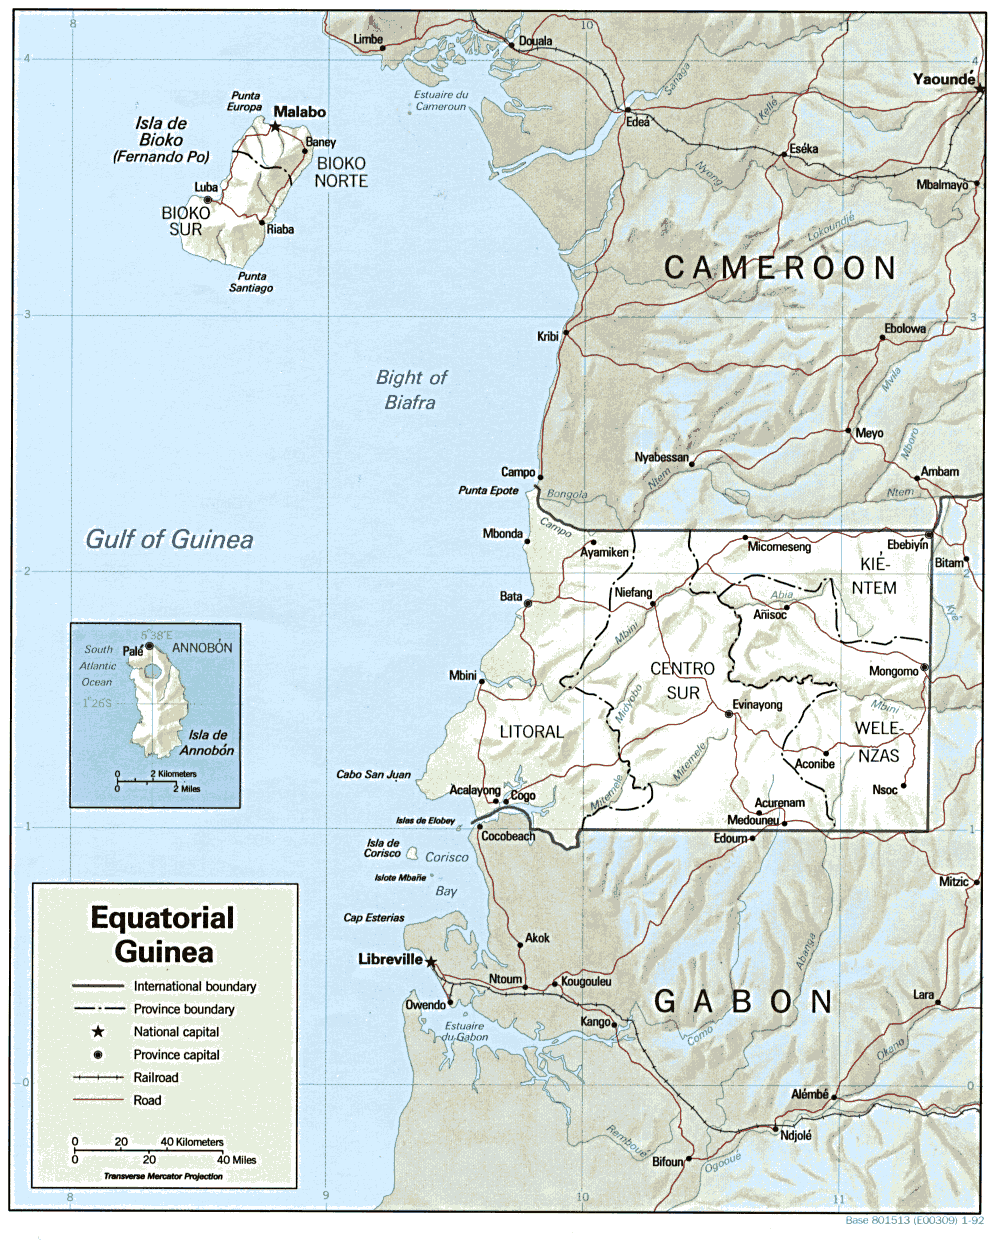 Geography of Equatorial Guinea - Wikipedia on map showing algeria and guinea, map of equatorial guinea in madrid, the capital of guinea ecuatorial in spanish, map of nigeria biafra, guinea ecuatorial map in spanish, map of africa, map of only equatorial guinea, map of mbini river, map of equatorial guinea in spain,